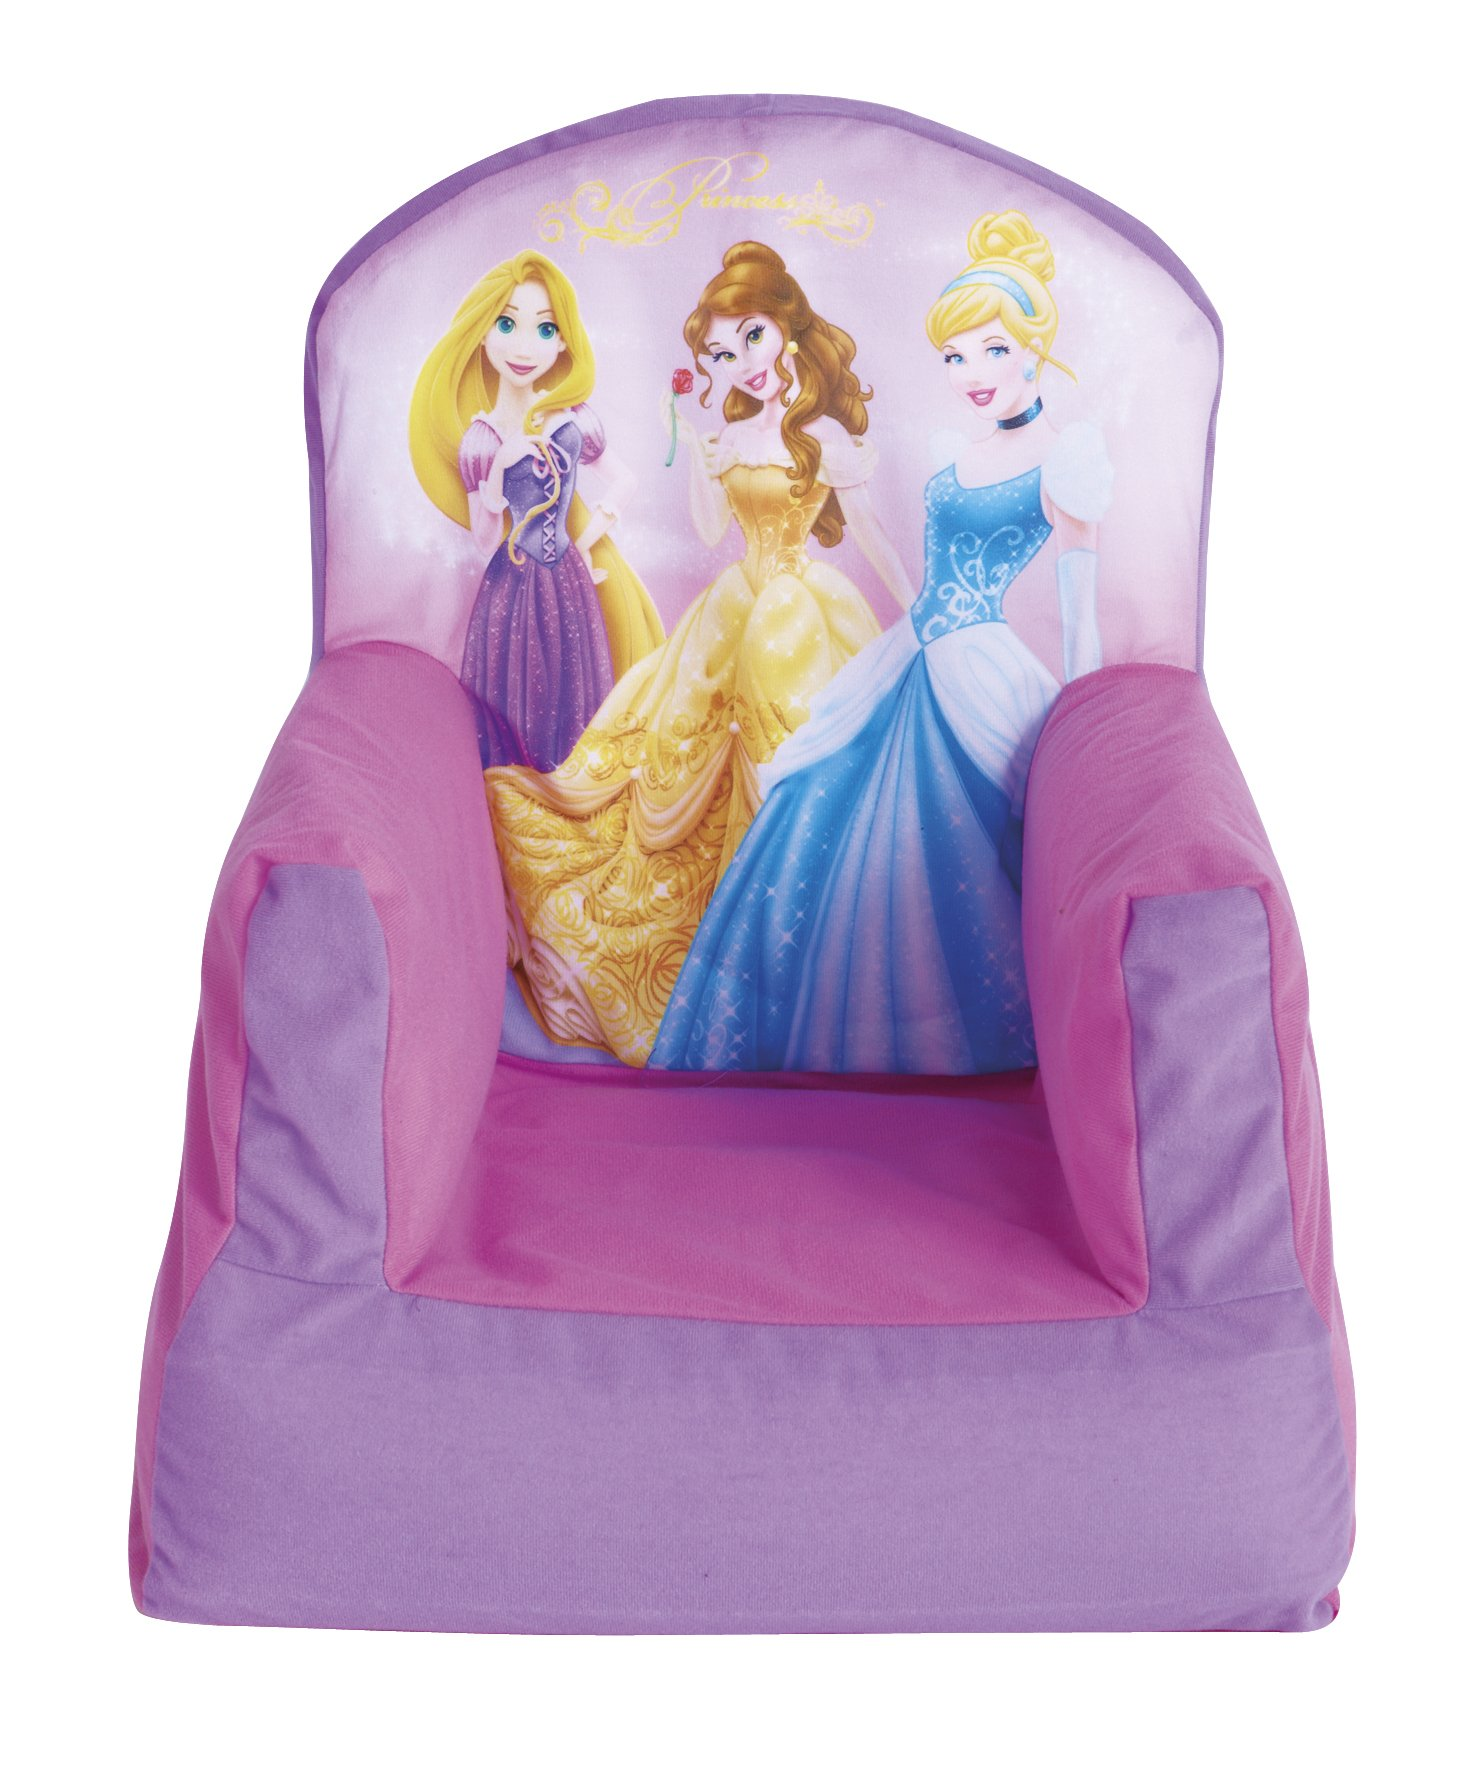 Disney Princess Cosy Chair